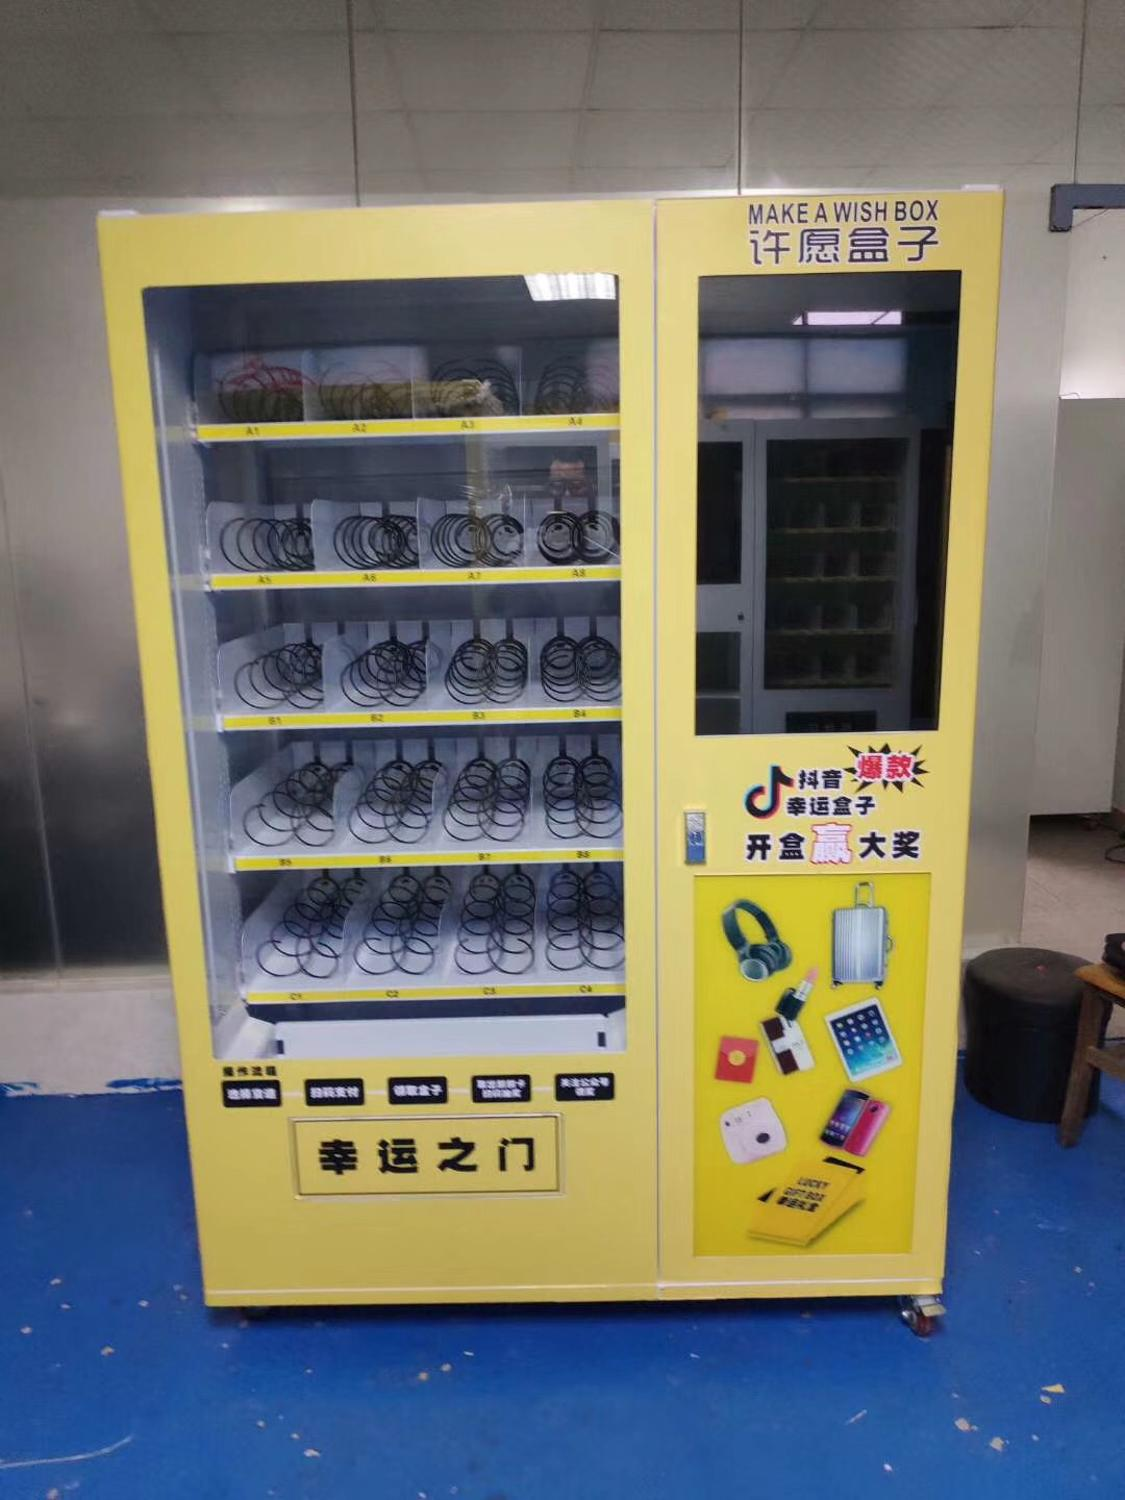 24 Hours Online Self Service Terminal Stores Drinks And Snacks Vending Automatic Machine With Lift System